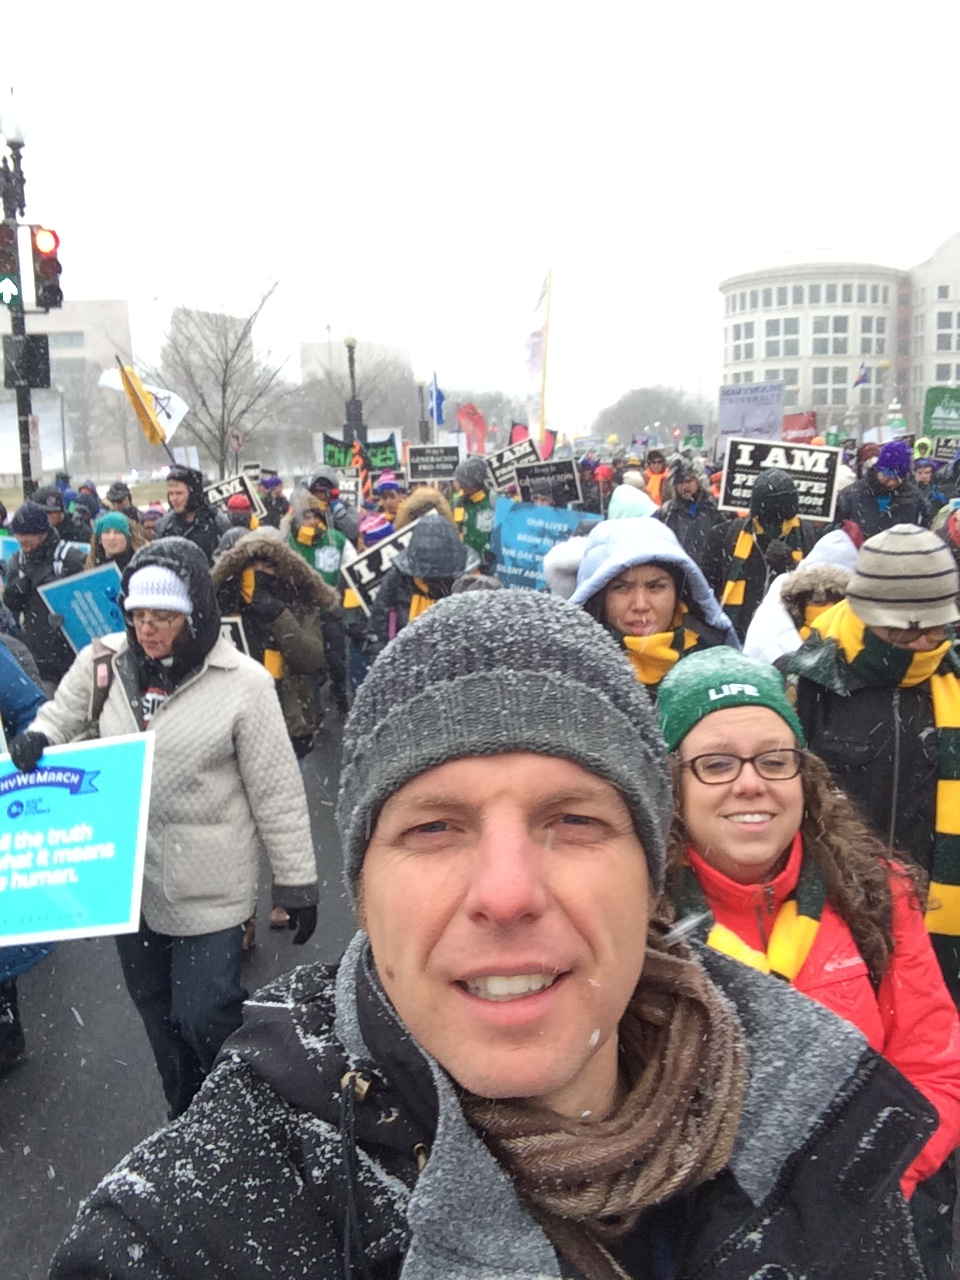 Blizzard snows begin during the March for Life!